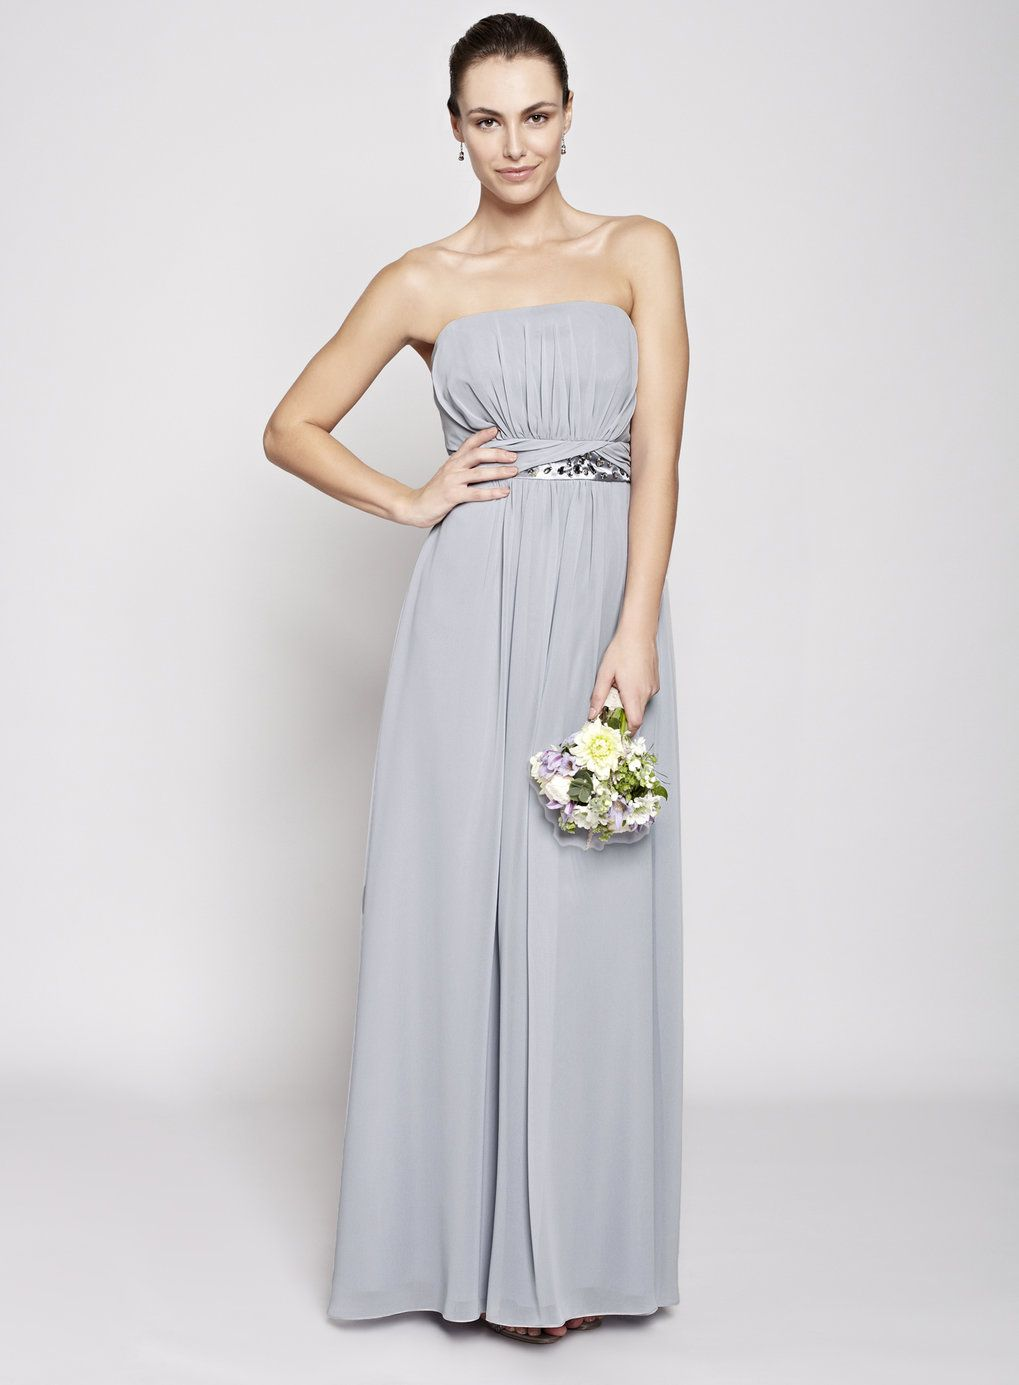 Silver daisy long bridesmaid dress bhs back to the drawing silver daisy long bridesmaid dress bhs ombrellifo Image collections